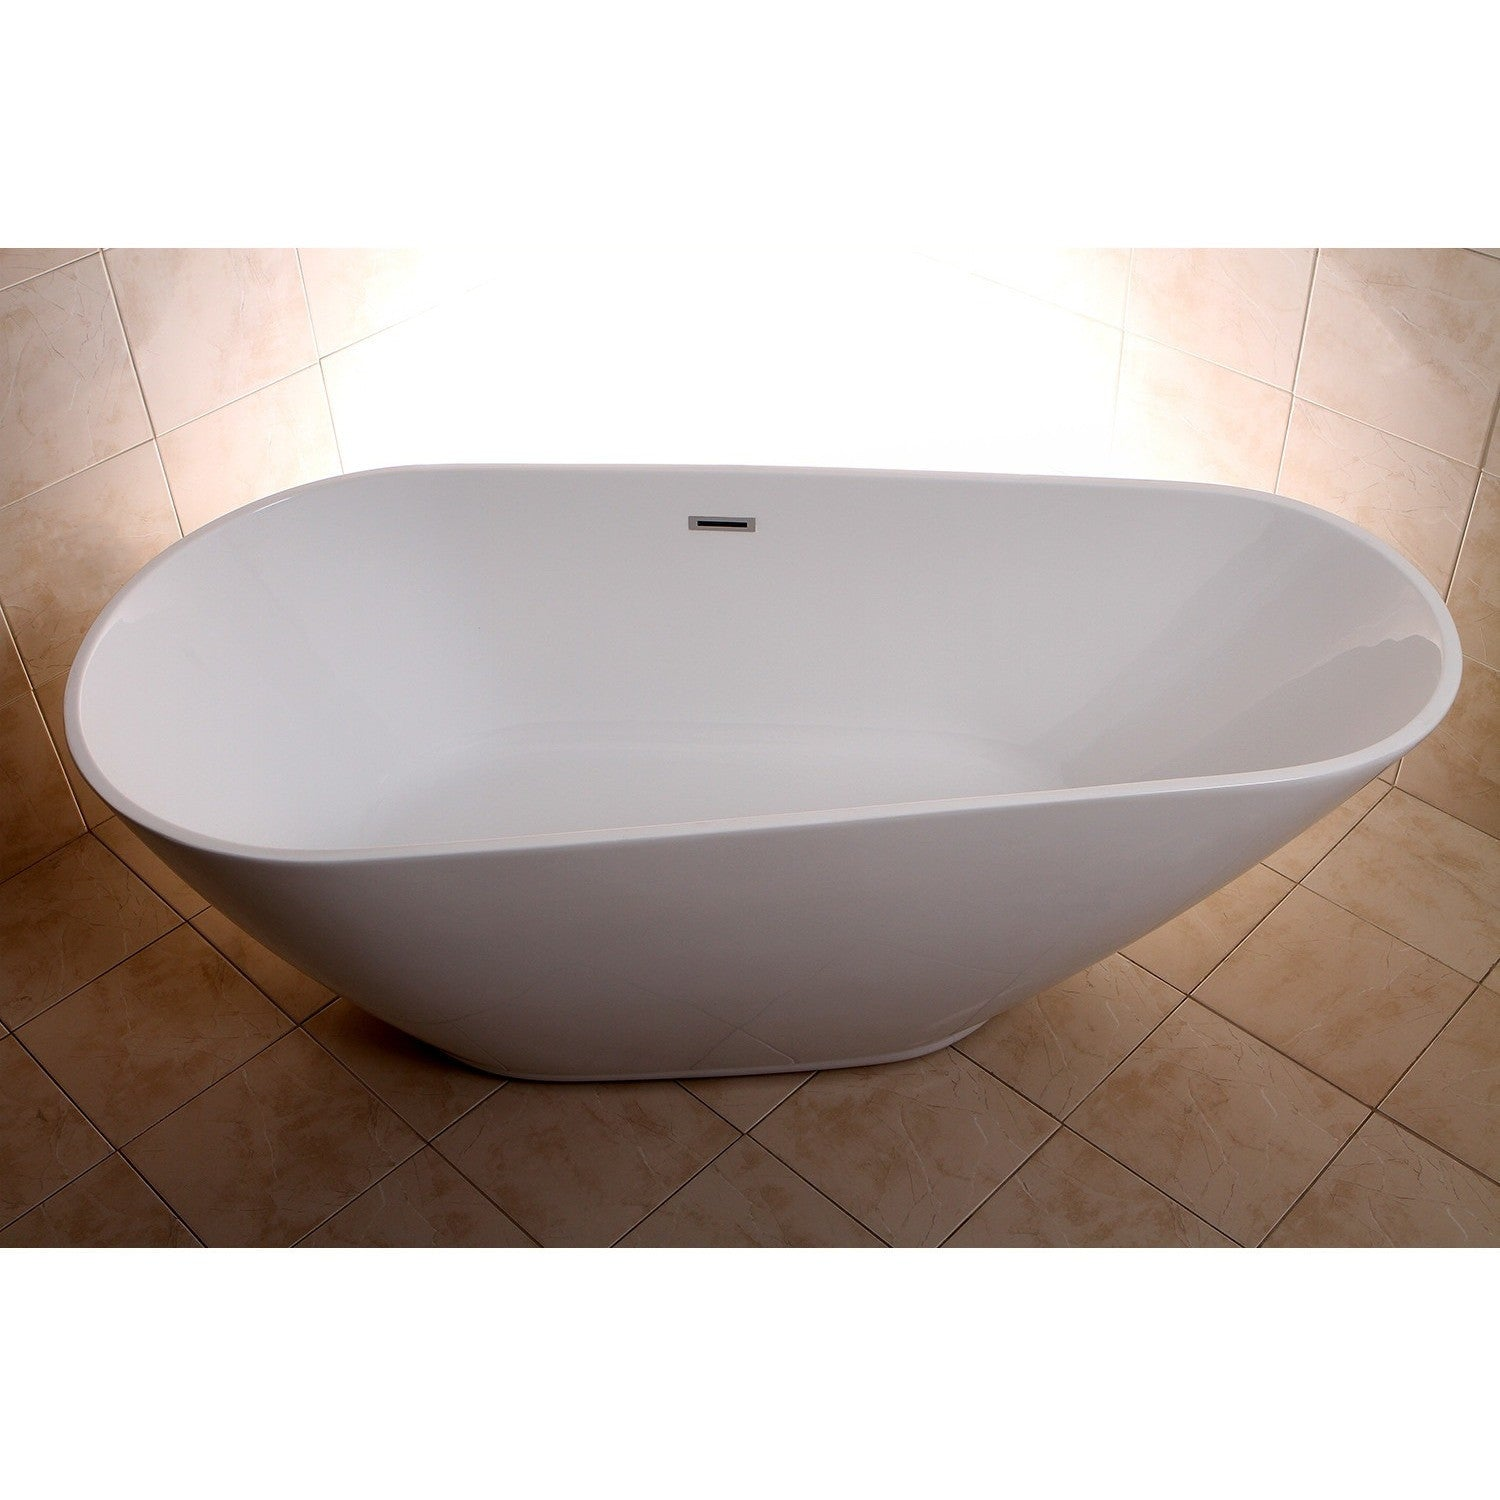 bcoqzvilepkd sanitary silver with china tubs mosaic bathtub k prices factory hot bath freestanding cheap foshan color product clawfoot tub ware